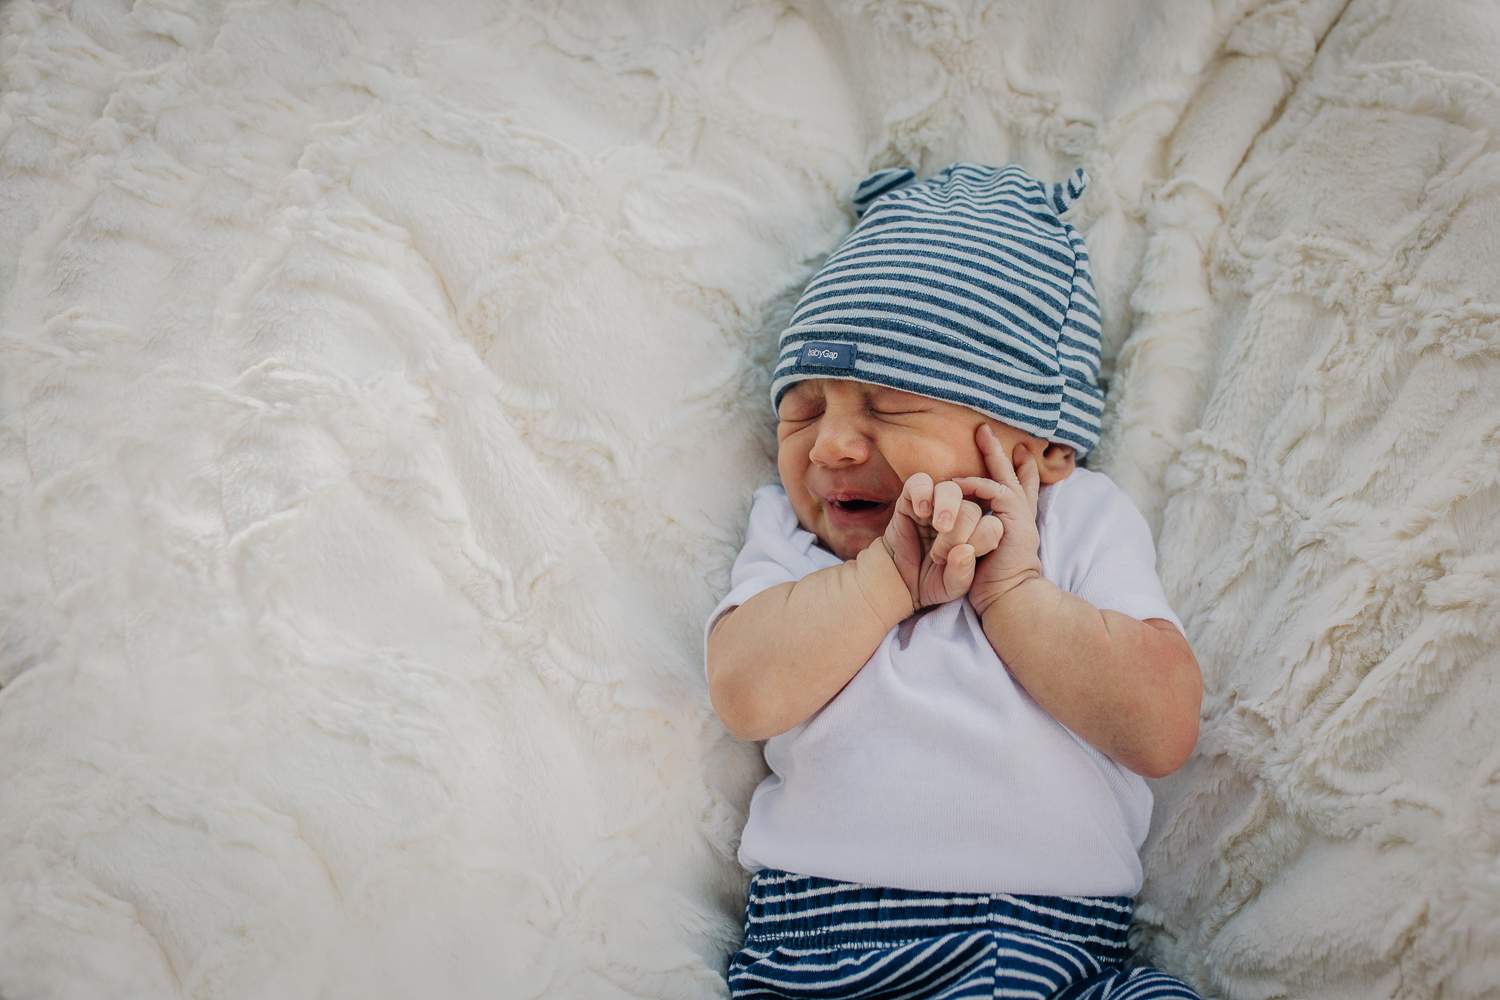 newborn boy laying down on a white blanket with his hands up by his face | SF Baby Photography